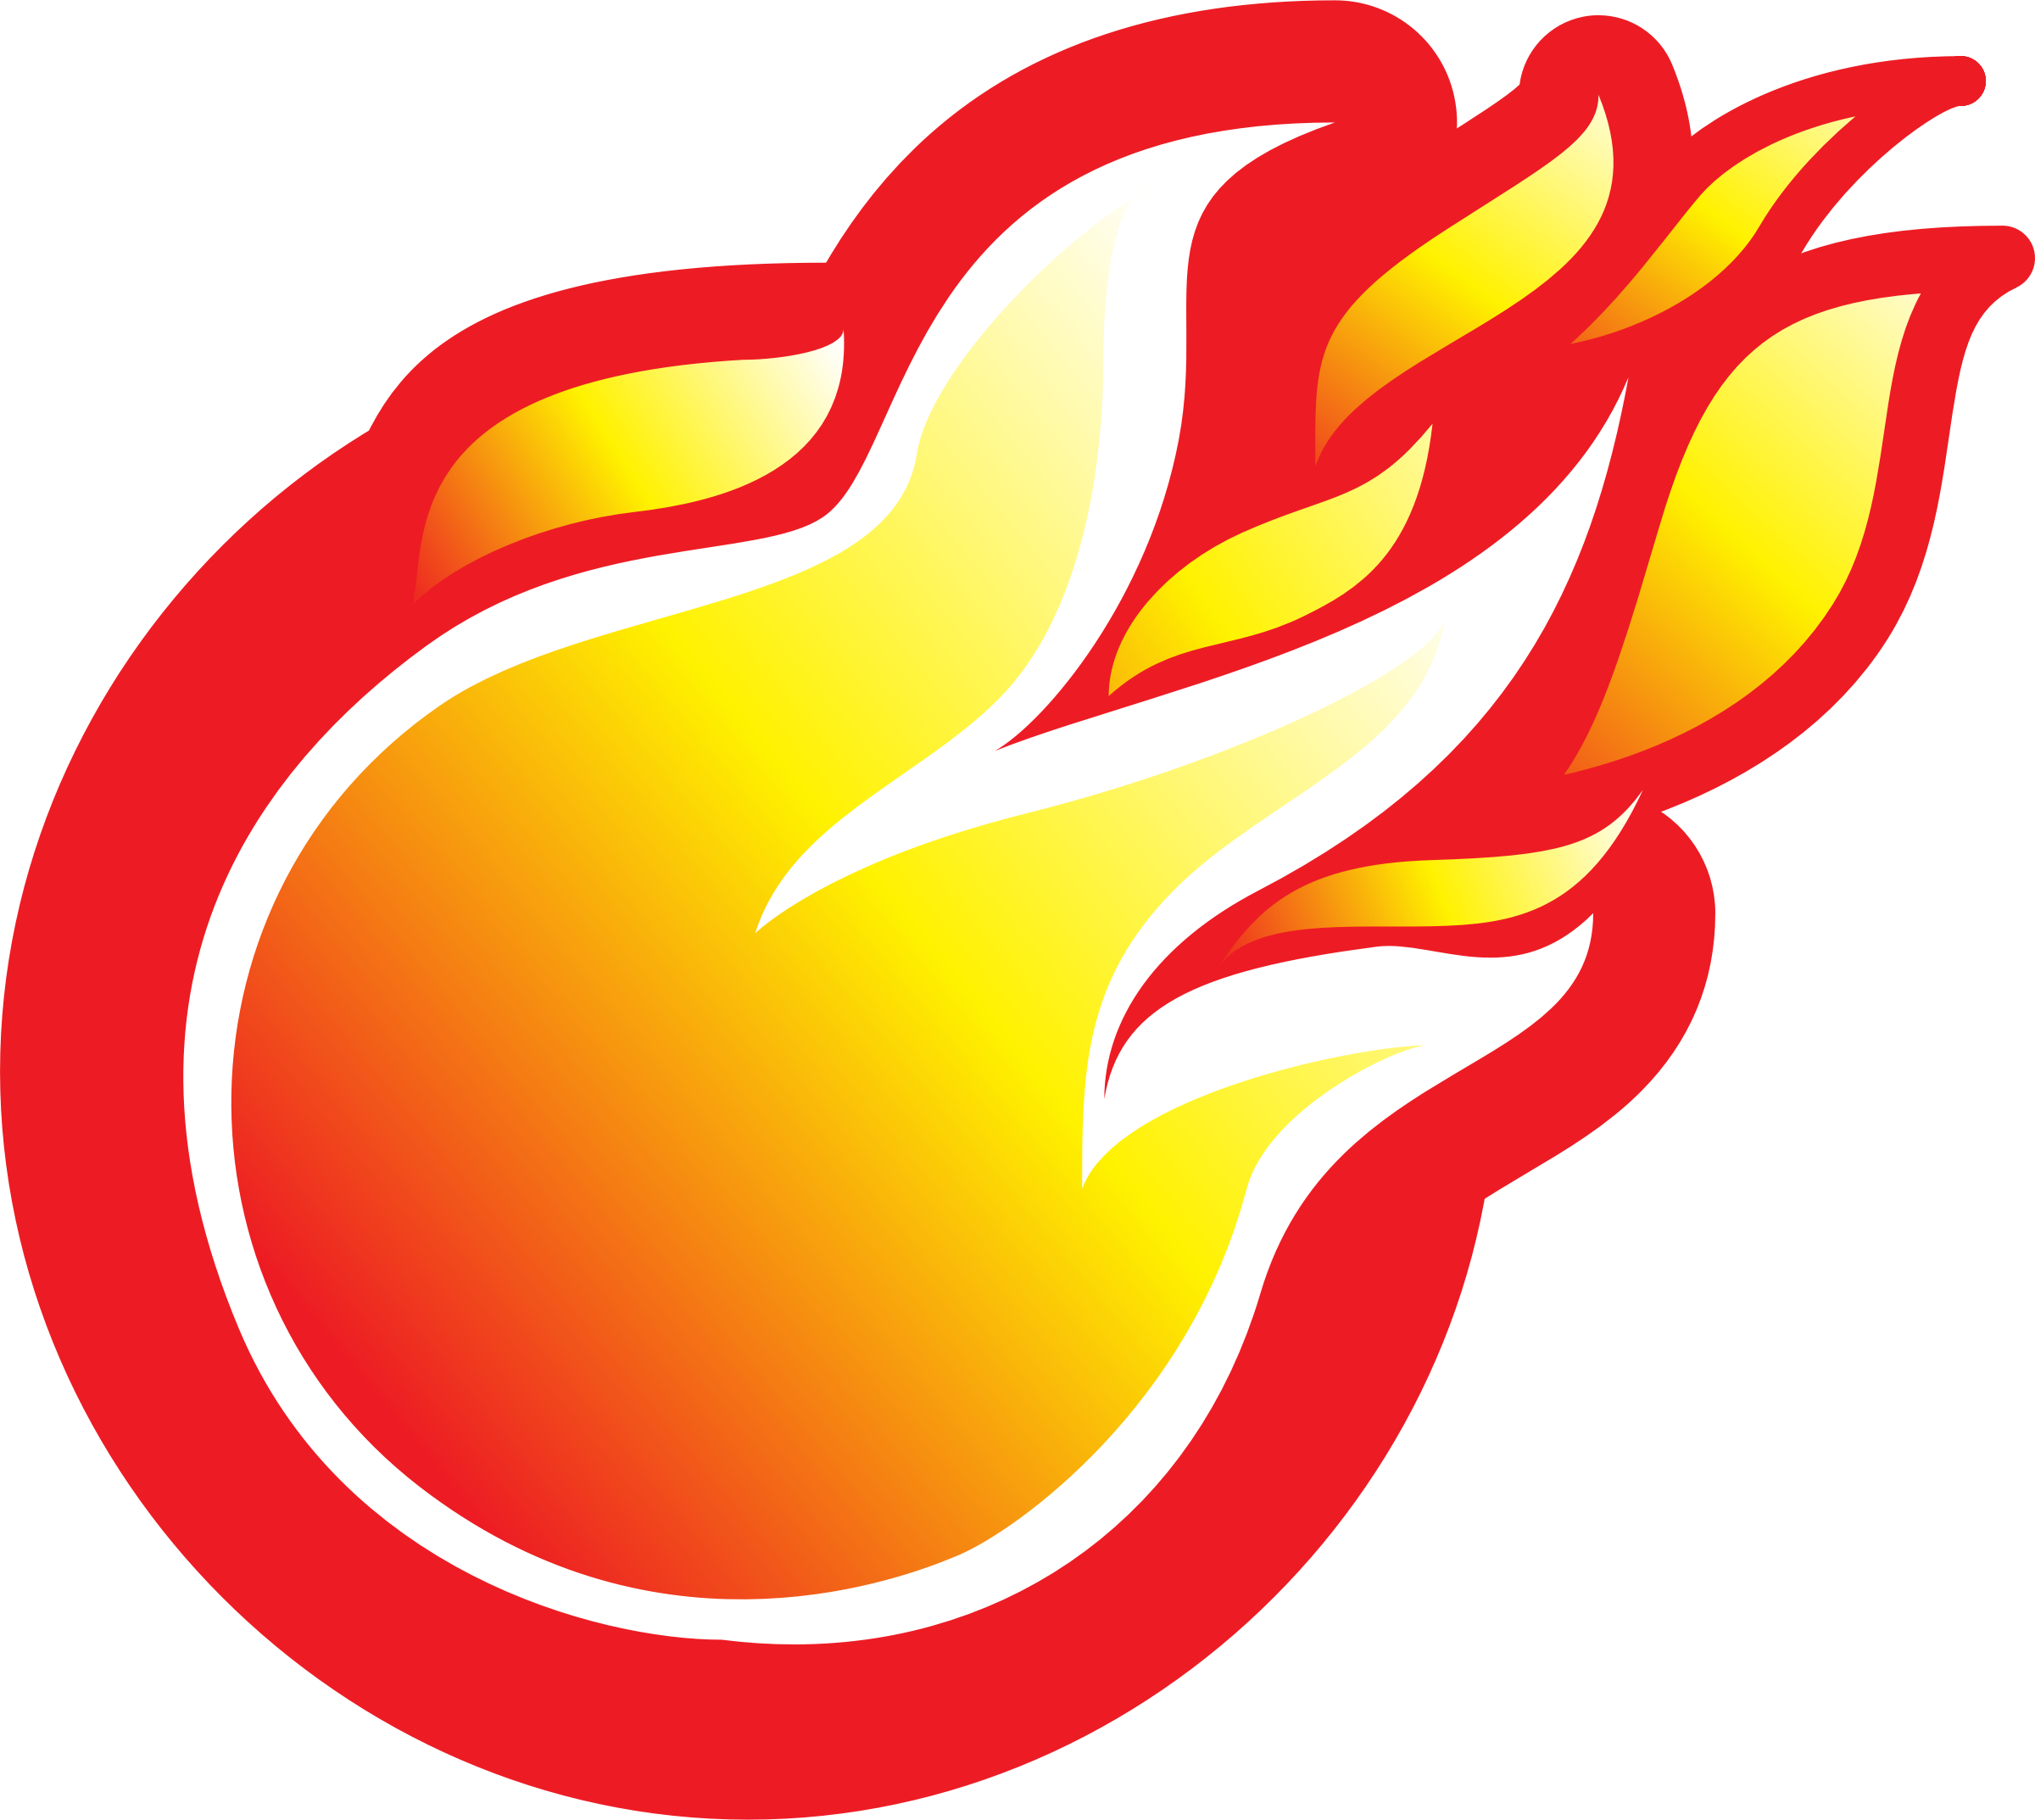 jpg freeuse Fire clipart. Flame image ruby logo